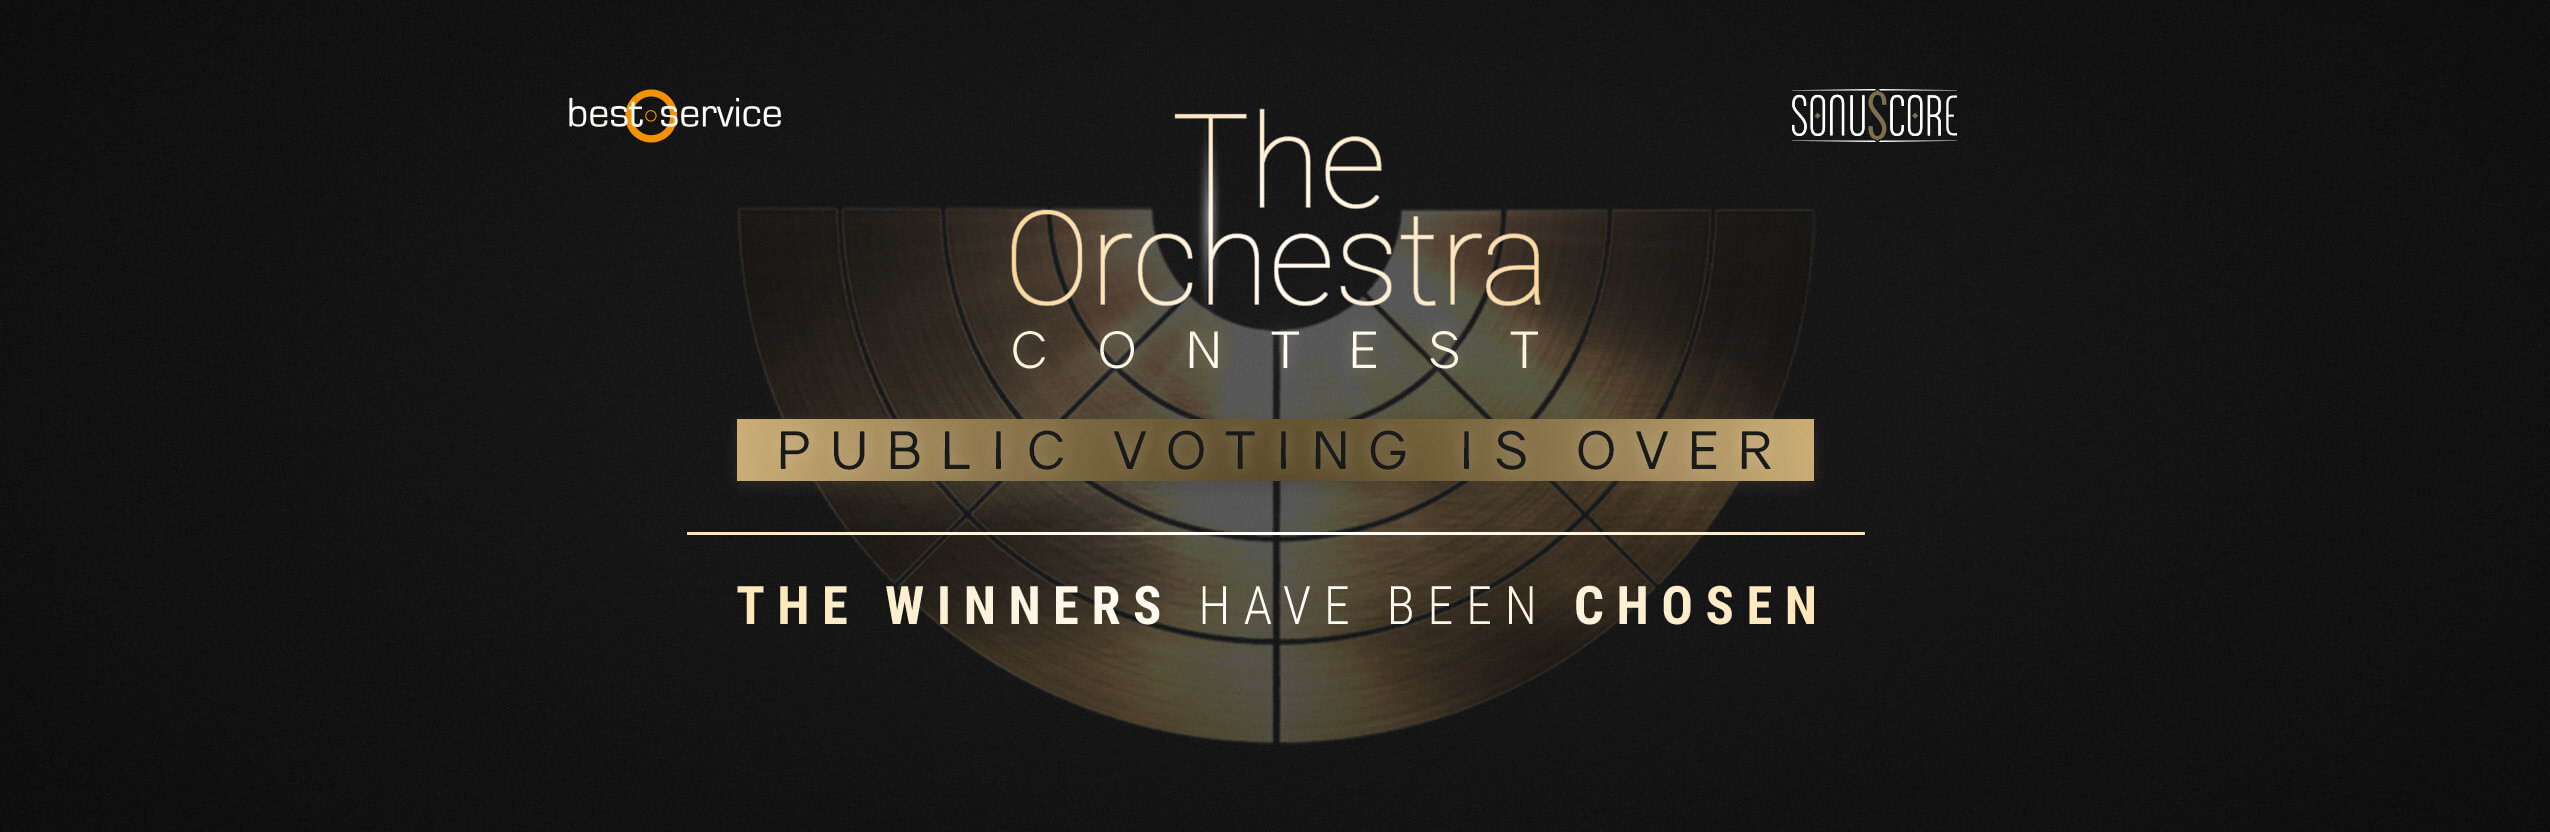 The Orchestra Contest Website Banner End